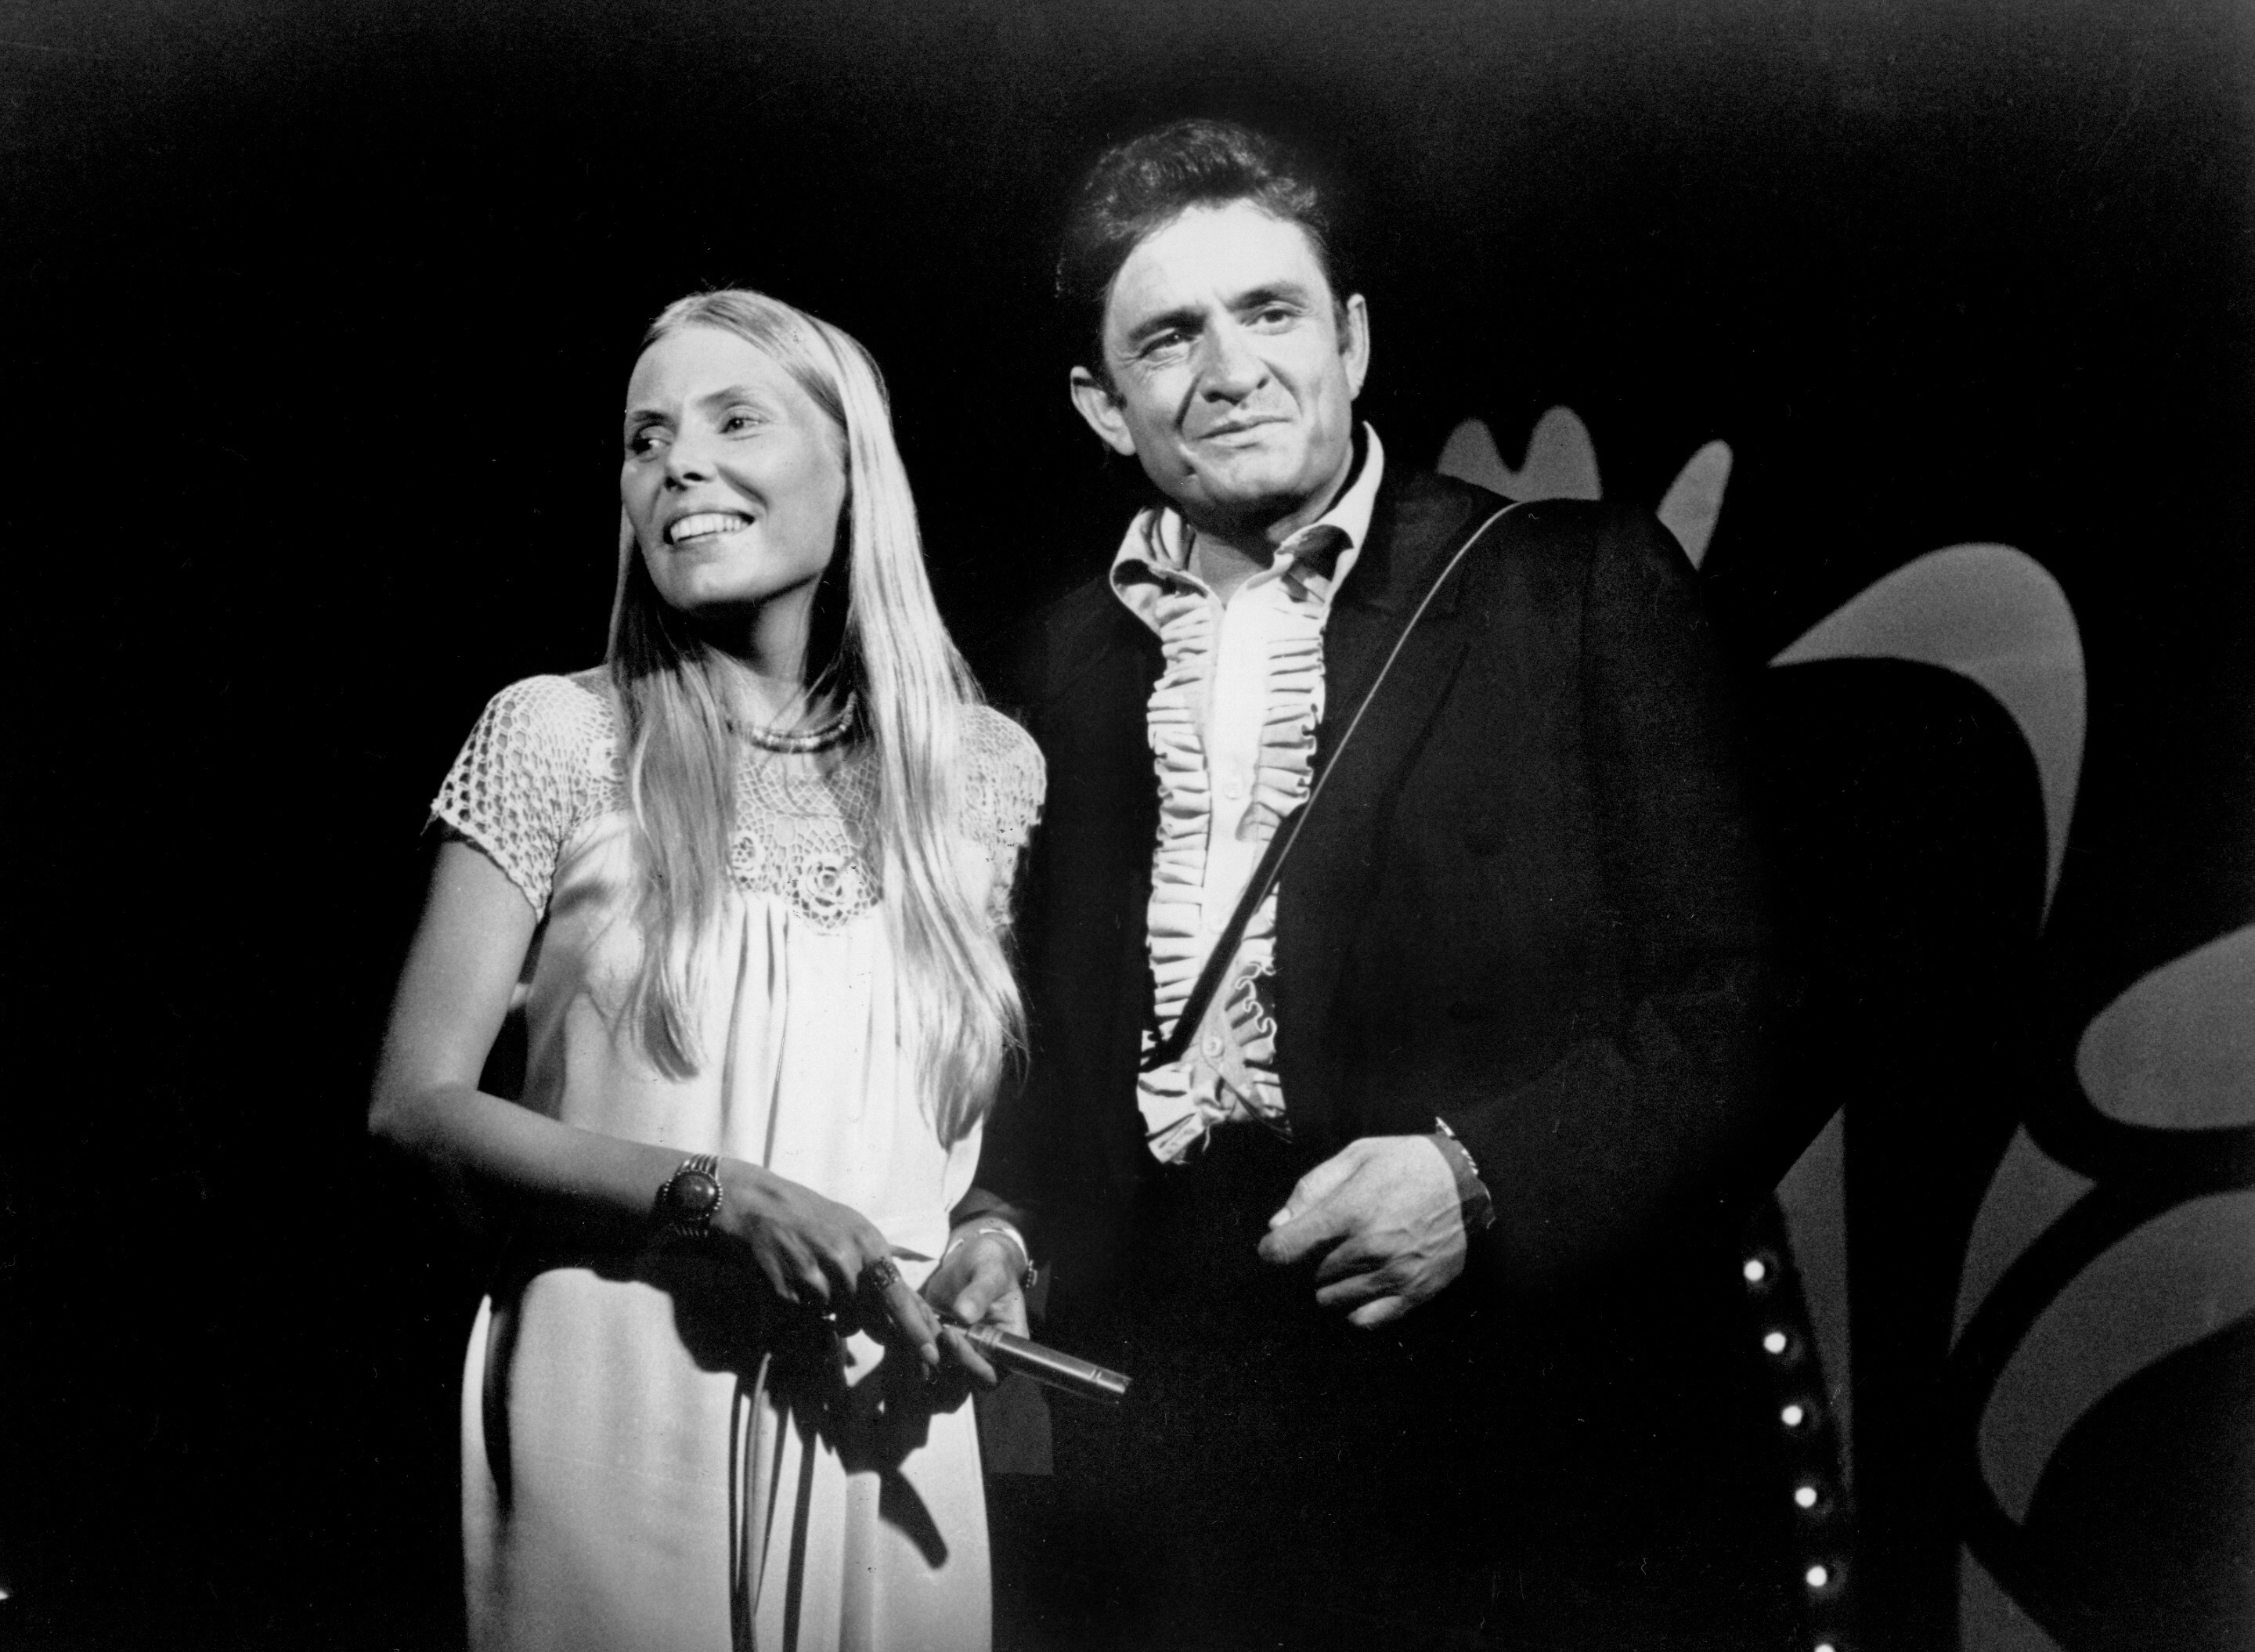 The Johnny Cash Show (ABC)  TV-Series 1969 - 1971 Shown from left: Joni Mitchell, Johnny Cash  Featuring: Joni Mitchell When: 01 Apr 2015 Credit: WENN.com  **WENN does not claim any ownership including but not limited to Copyright, License in attached material. Fees charged by WENN are for WENN's services only, do not, nor are they intended to, convey to the user any ownership of Copyright, License in material. By publishing this material you expressly agree to indemnify, to hold WENN, its directors, shareholders, employees harmless from any loss, claims, damages, demands, expenses (including legal fees), any causes of action, allegation against WENN arising out of, connected in any way with publication of the material.**